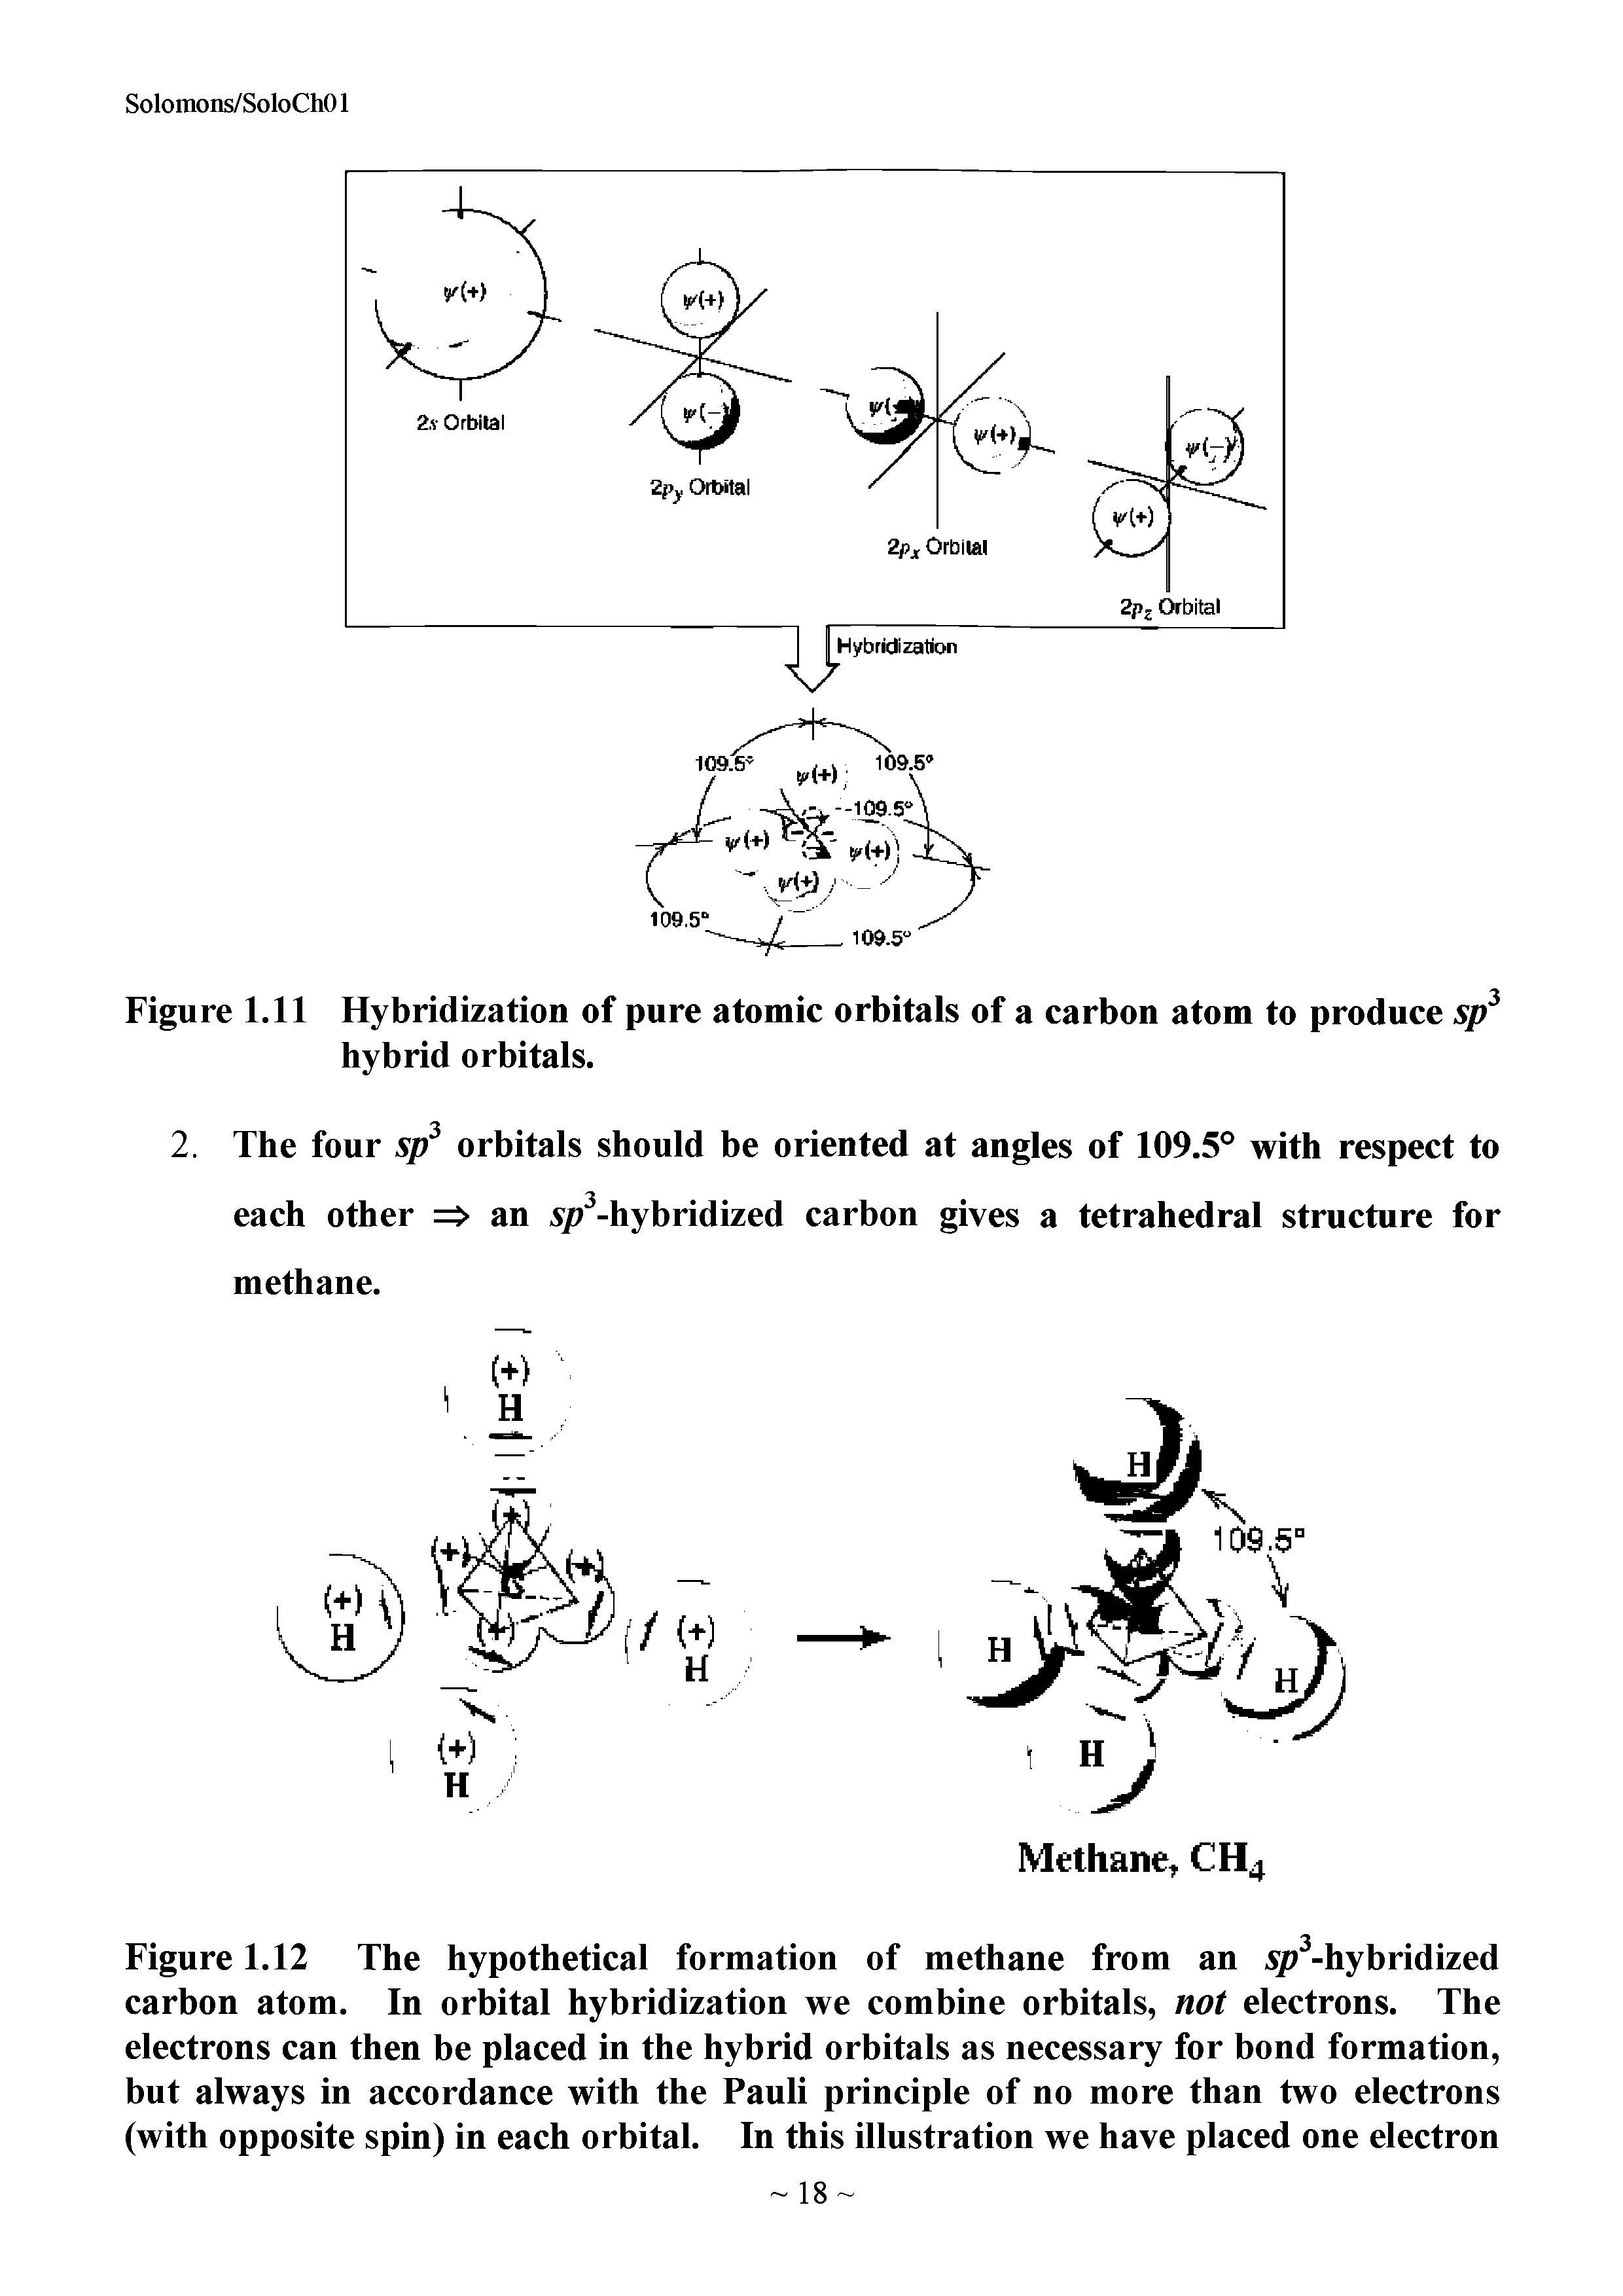 Figure 1.12 The hypothetical formation of methane from an sp -hybridized carbon atom. In orbital hybridization we combine orbitals, not electrons. The electrons can then be placed in the hybrid orbitals as necessary for bond formation, but always in accordance with the Pauli principle of no more than two electrons (with opposite spin) in each orbital. In this illustration we have placed one electron...